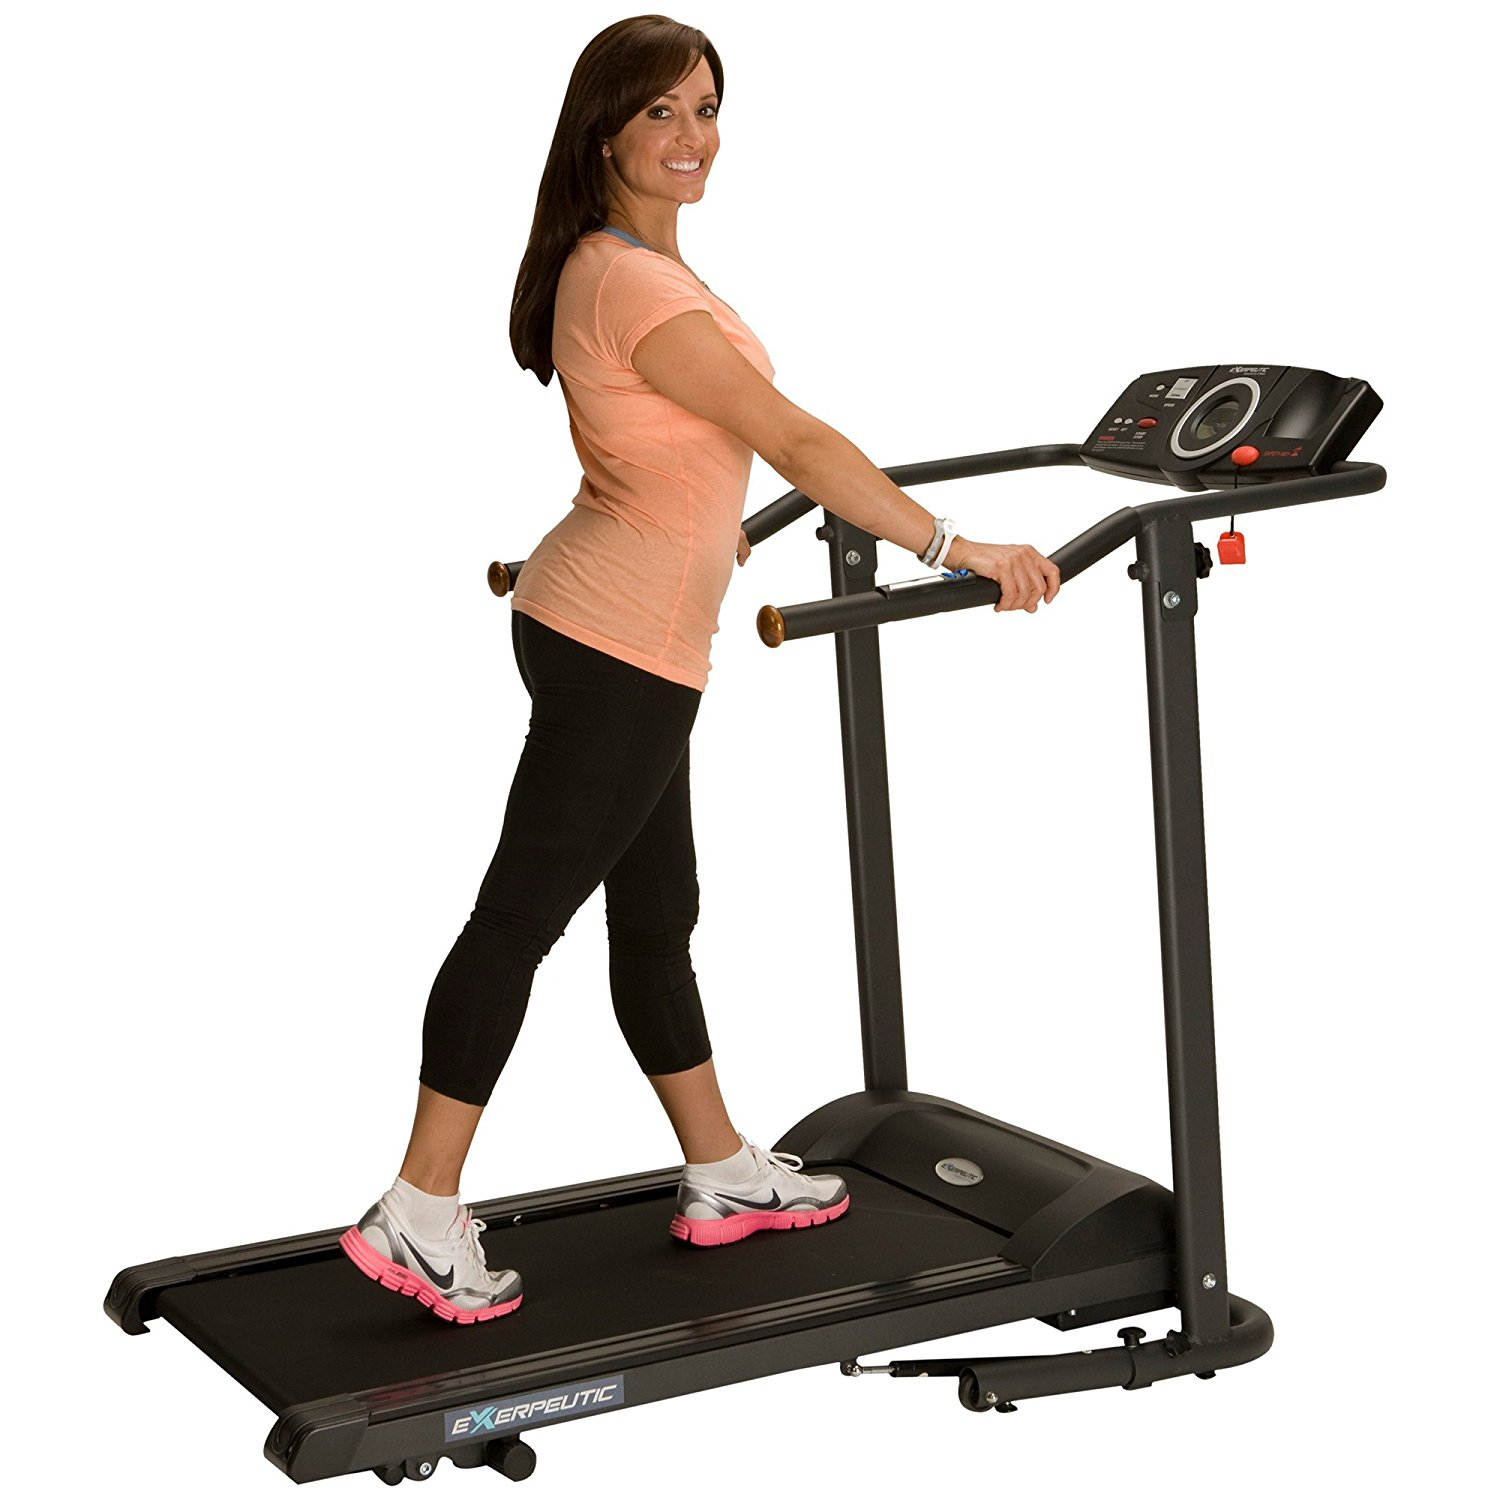 Exerpeutic Treadmills for HomeUse